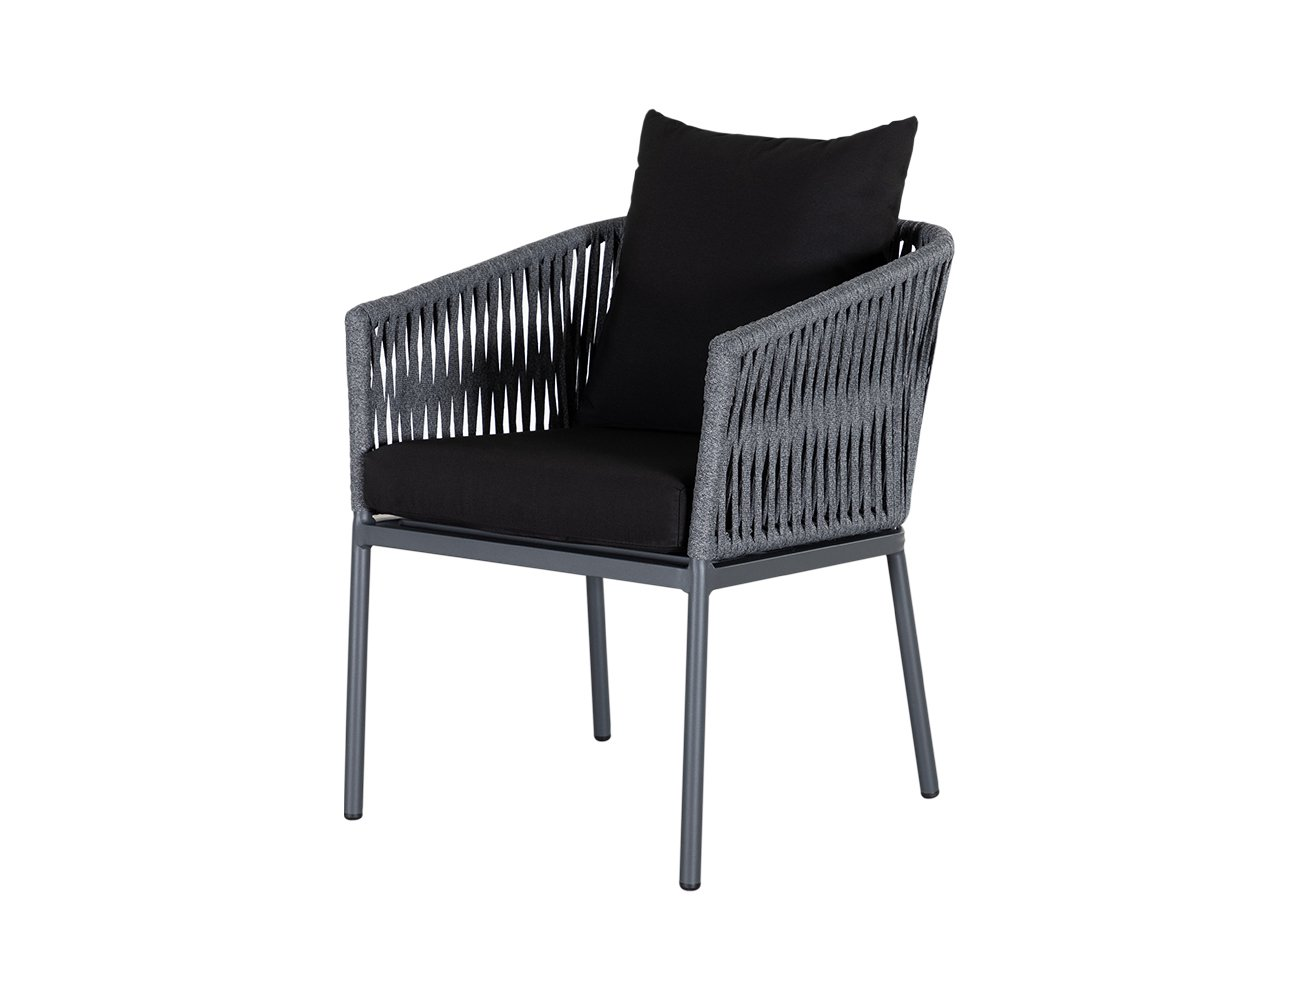 Shearwater Aluminium & Rope Outdoor Dining Chair